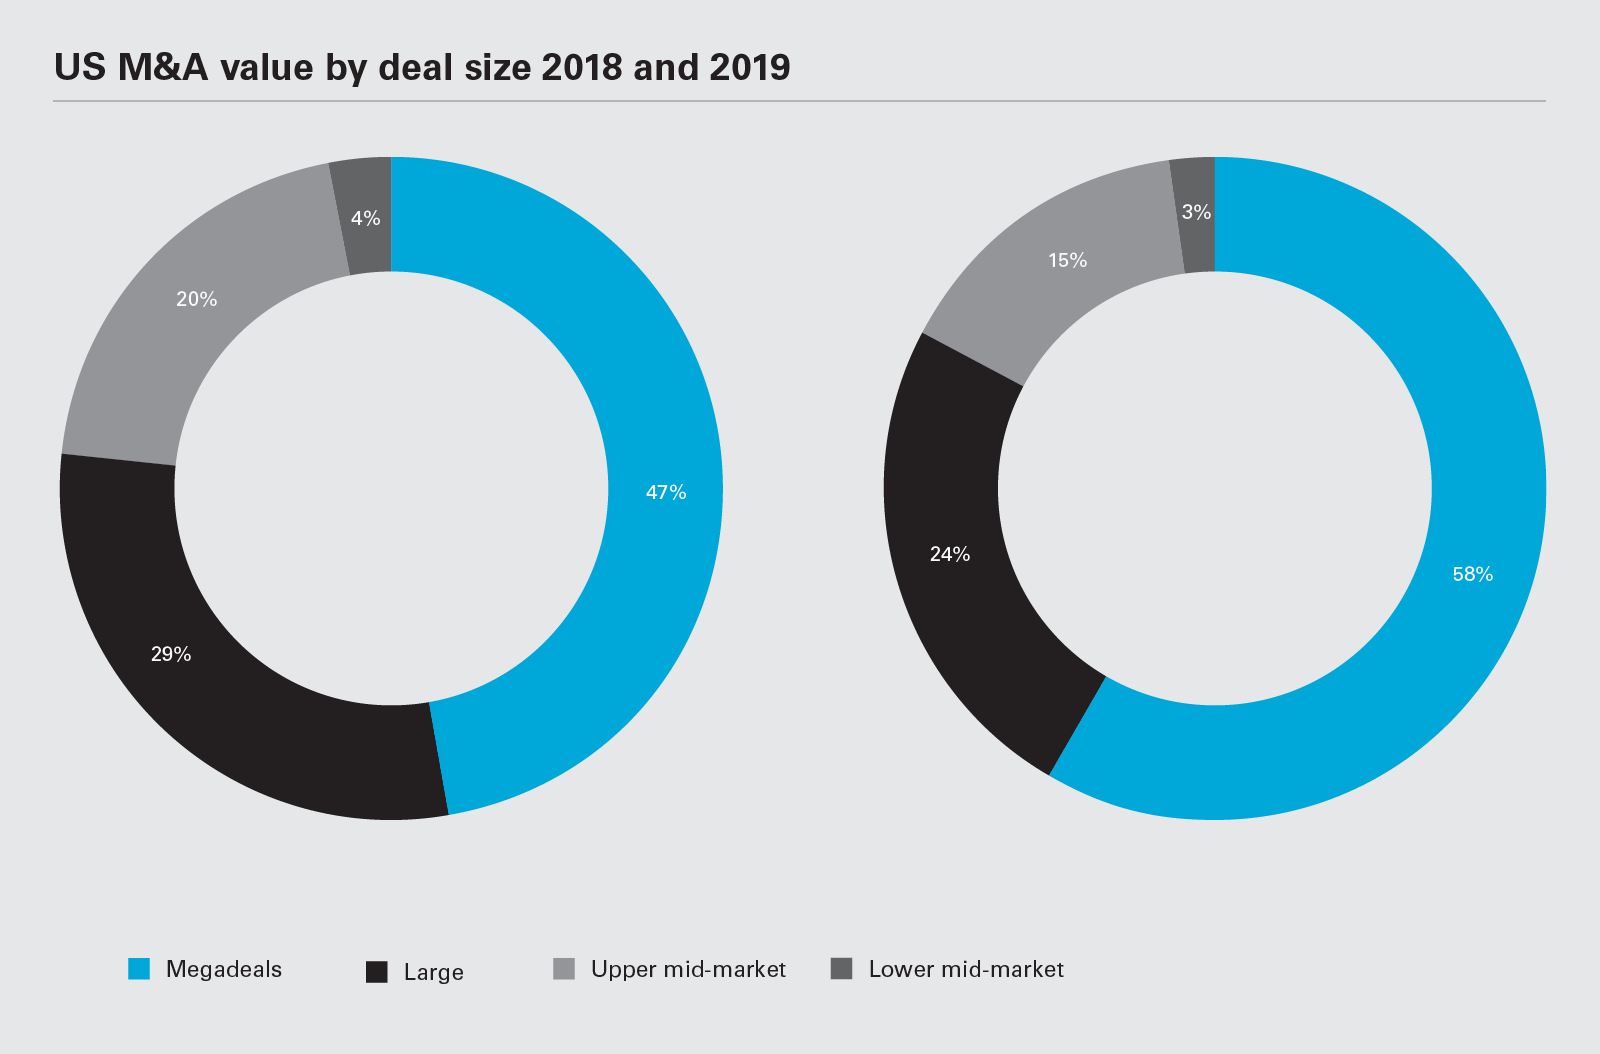 US M&A value by deal size 2018 and 2019